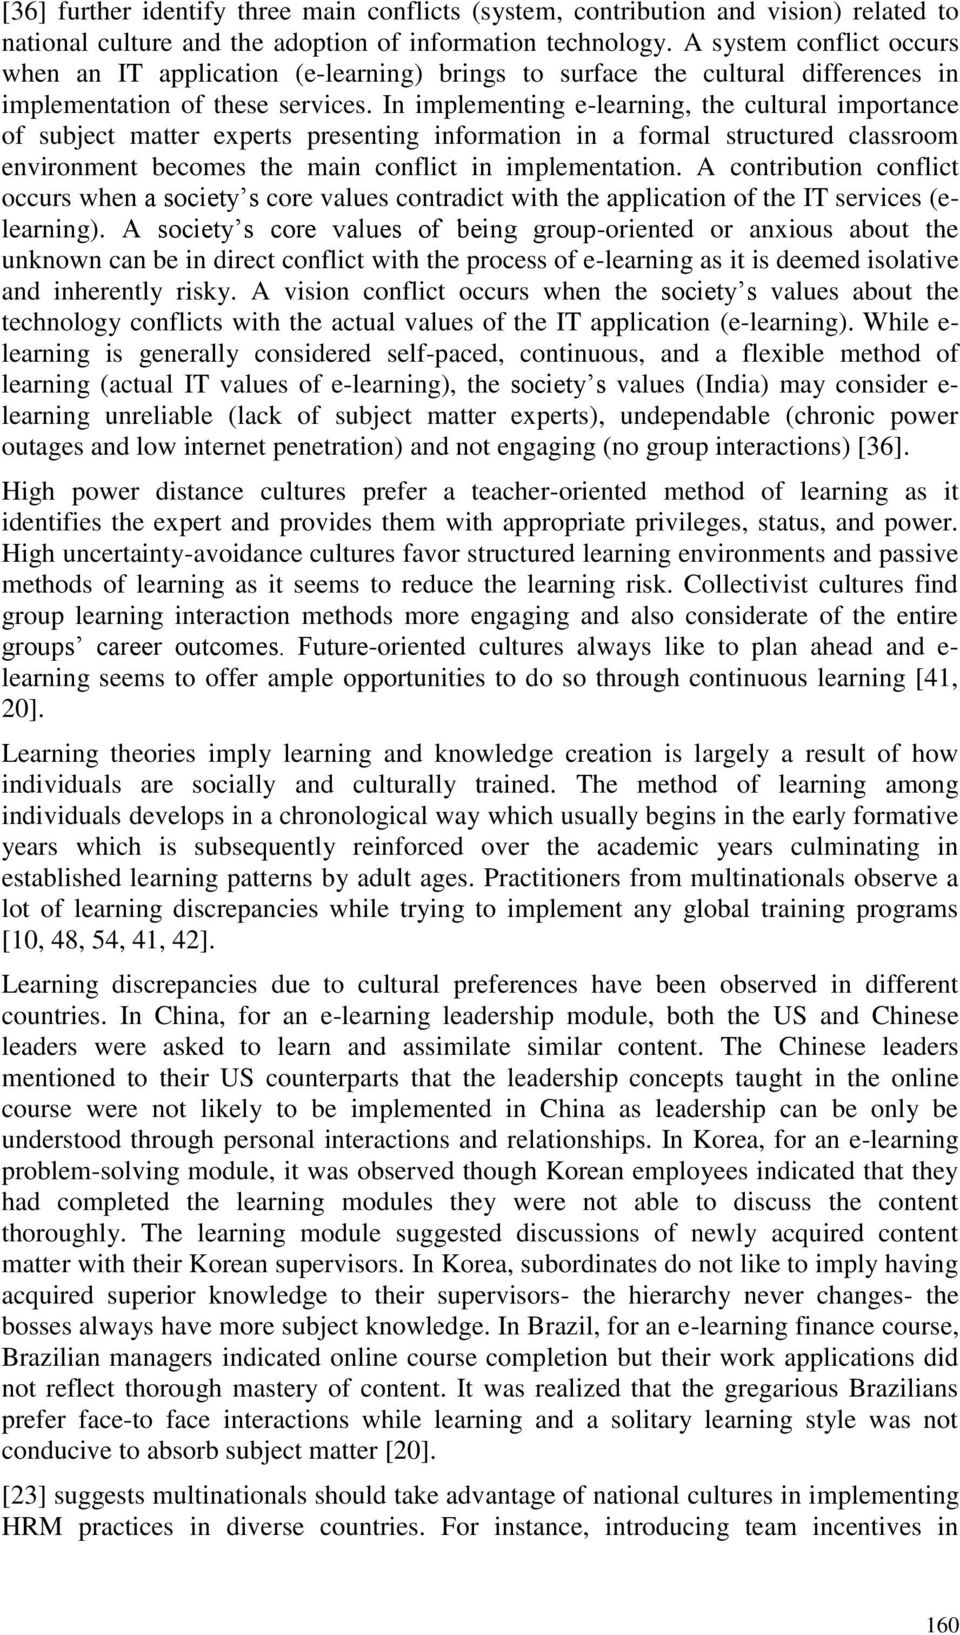 In implementing e-learning, the cultural importance of subject matter experts presenting information in a formal structured classroom environment becomes the main conflict in implementation.